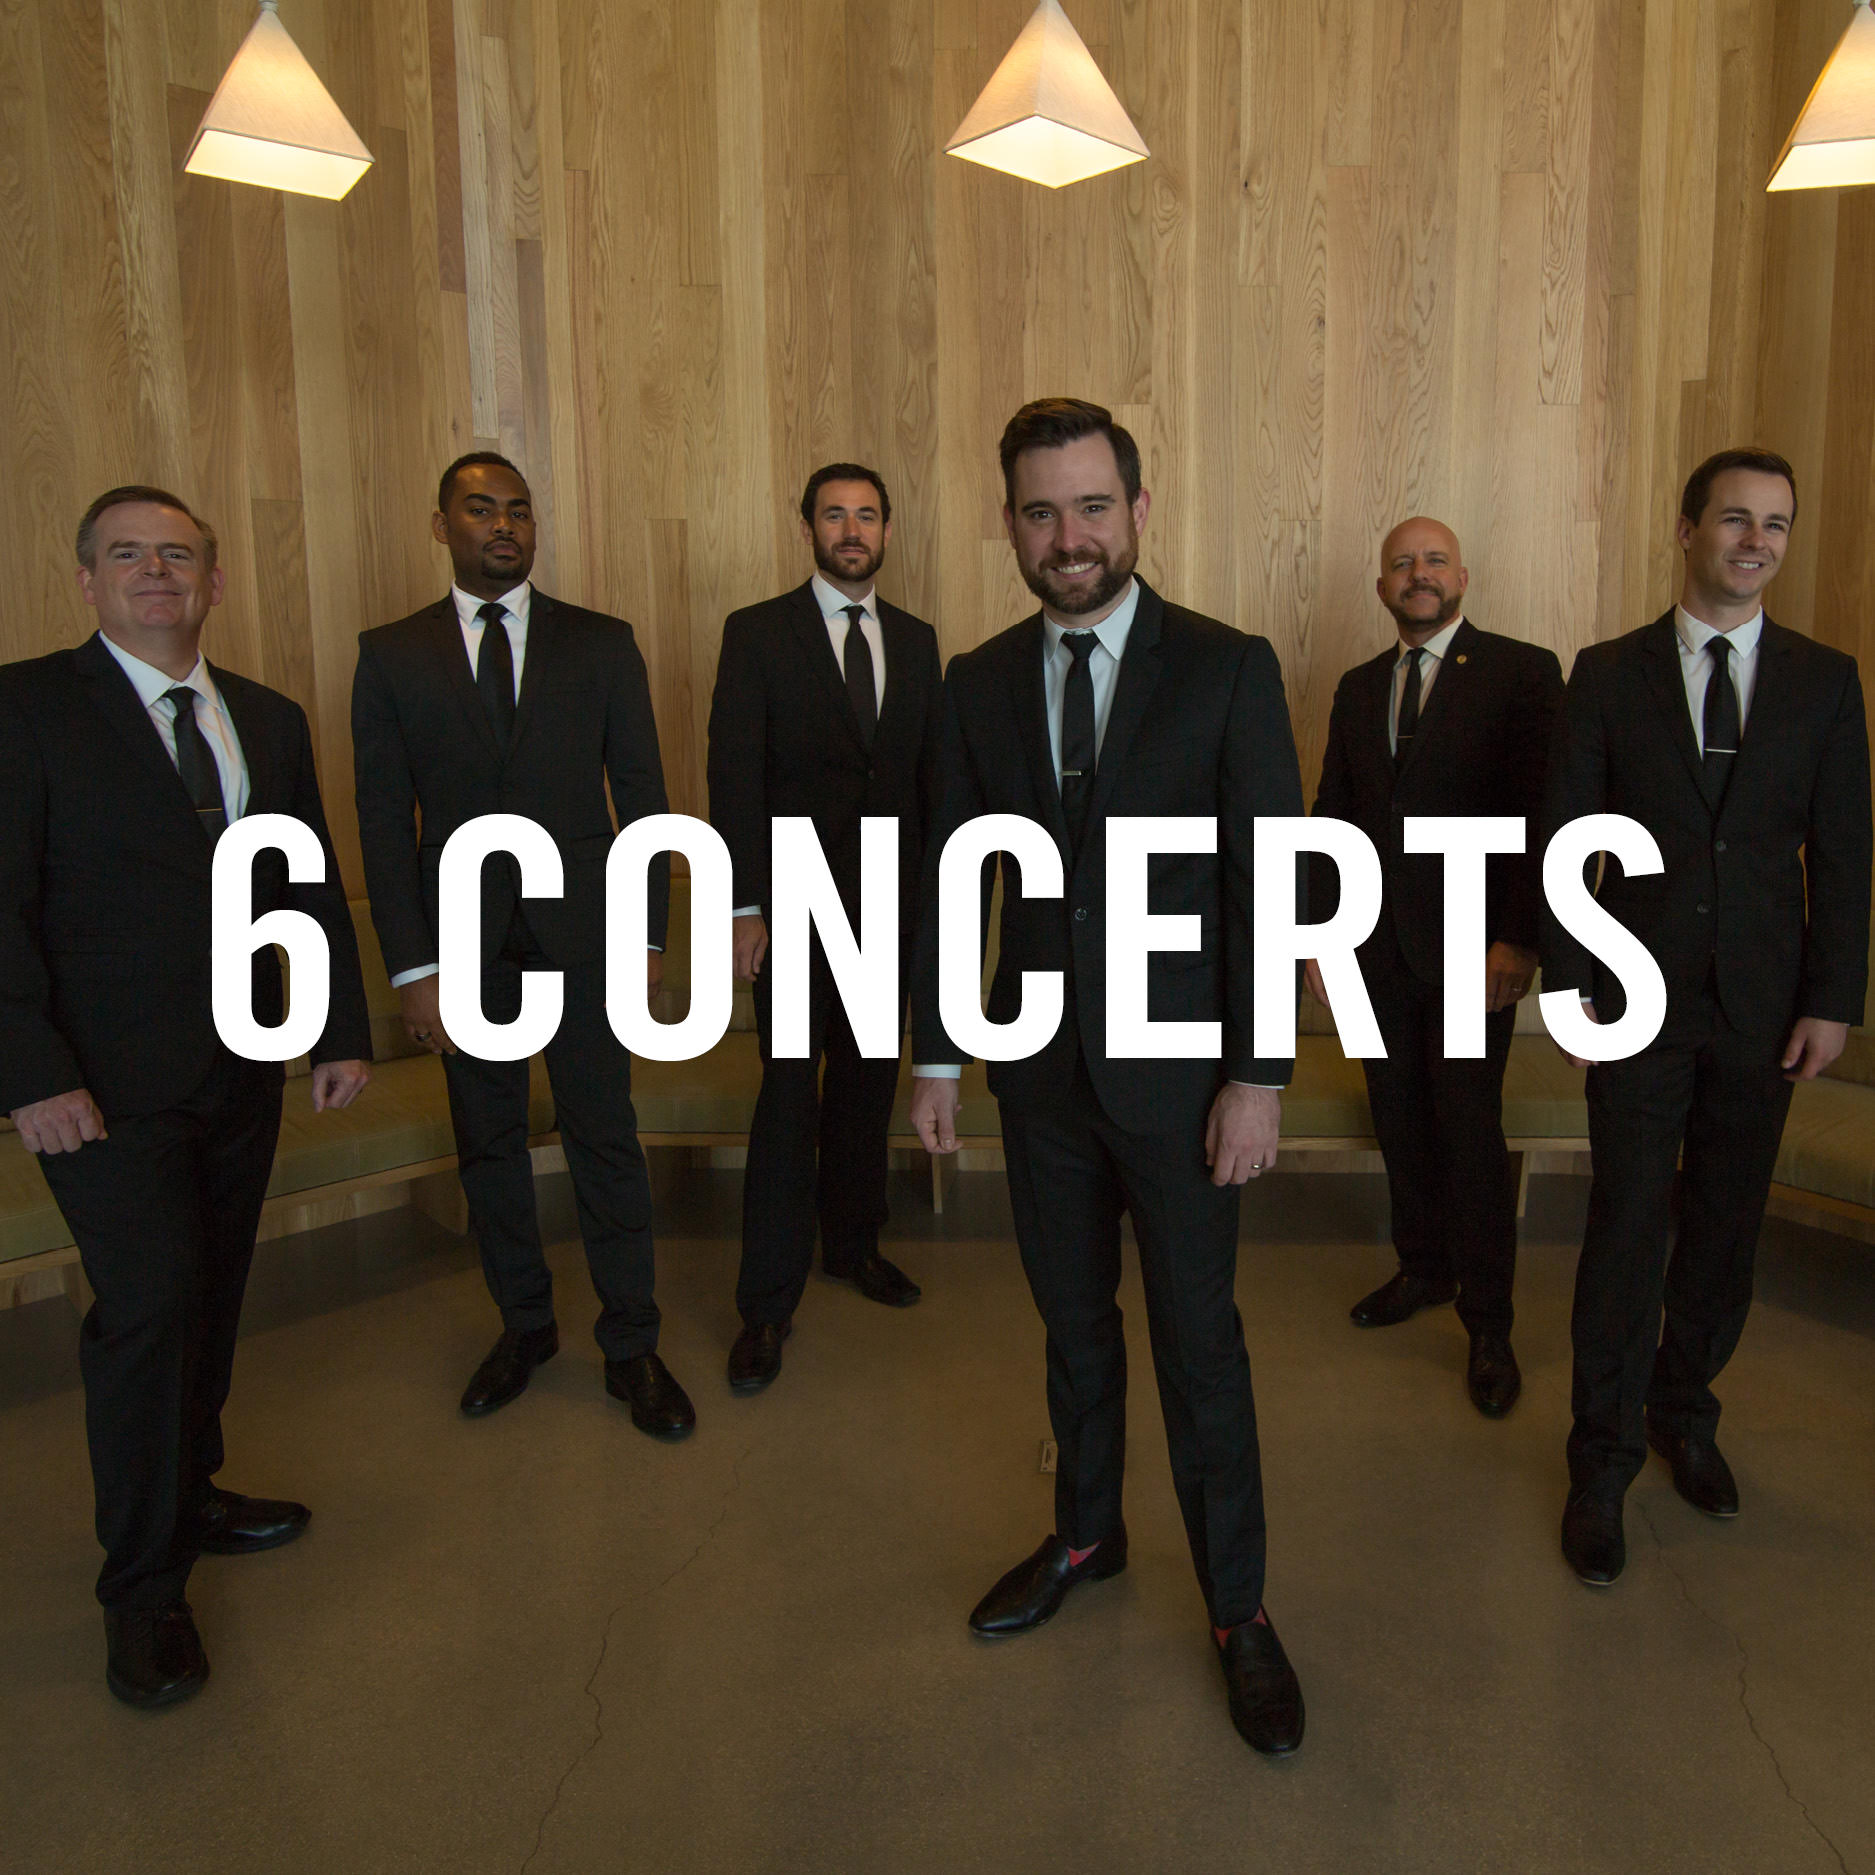 6 Concerts